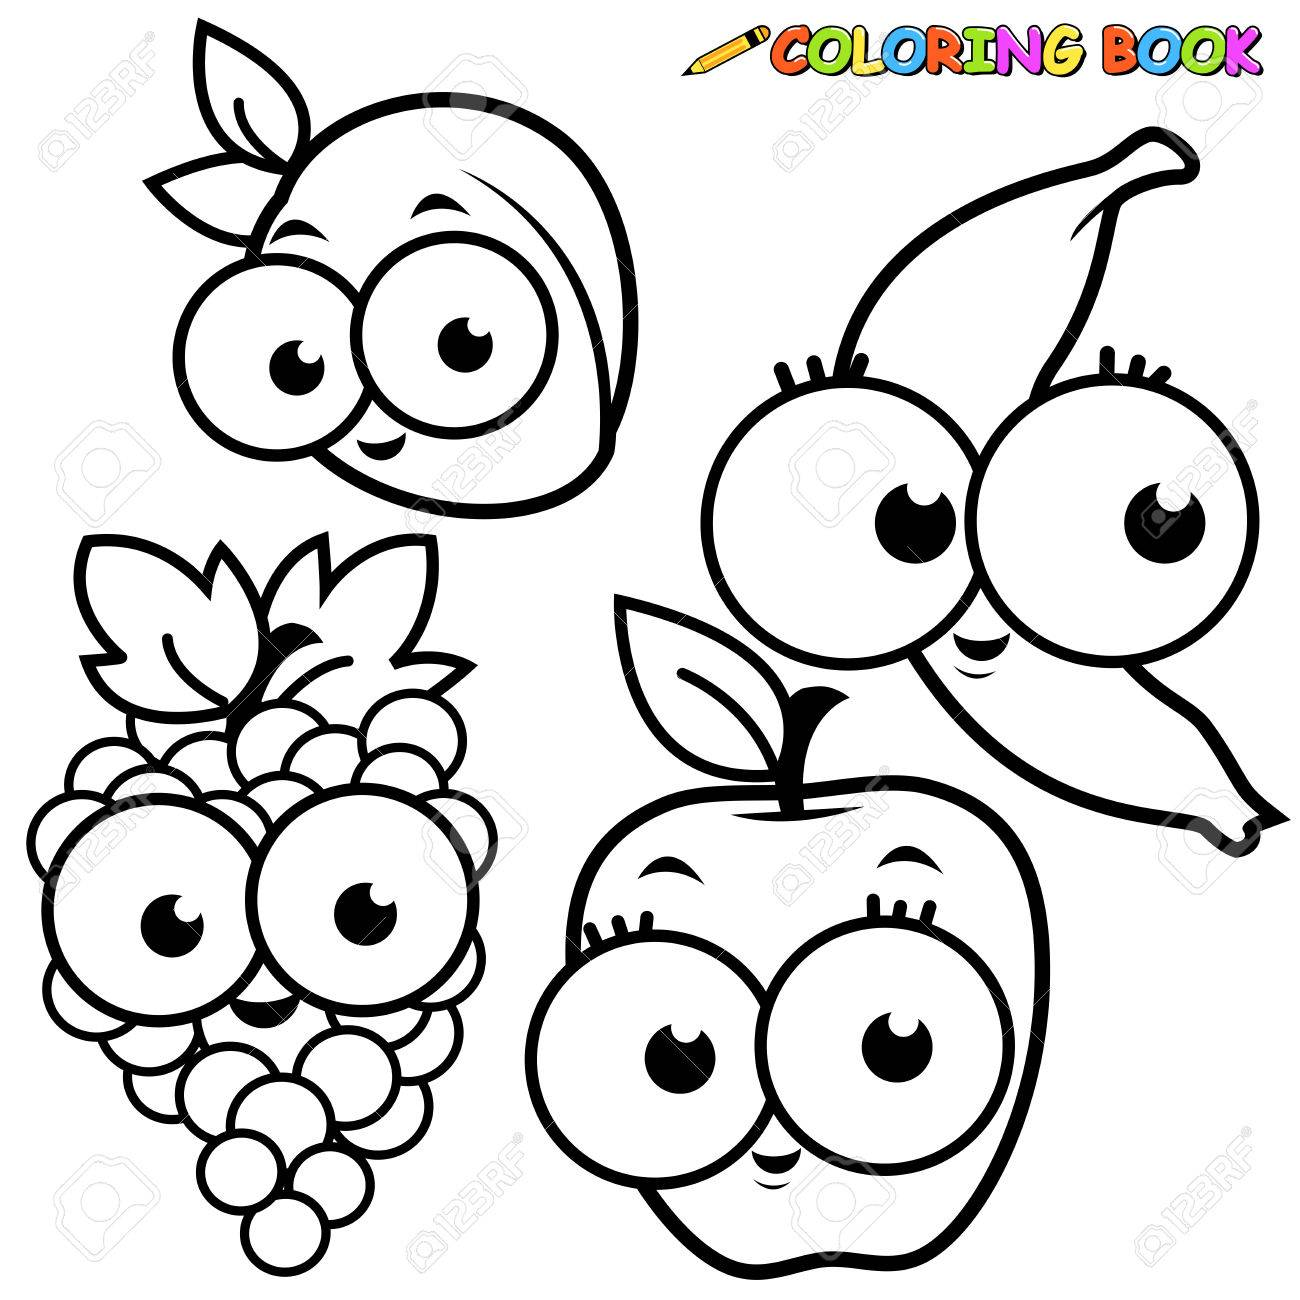 Coloring Book Fruit Cartoon Set Apricot Banana Grape Apple Stock Vector